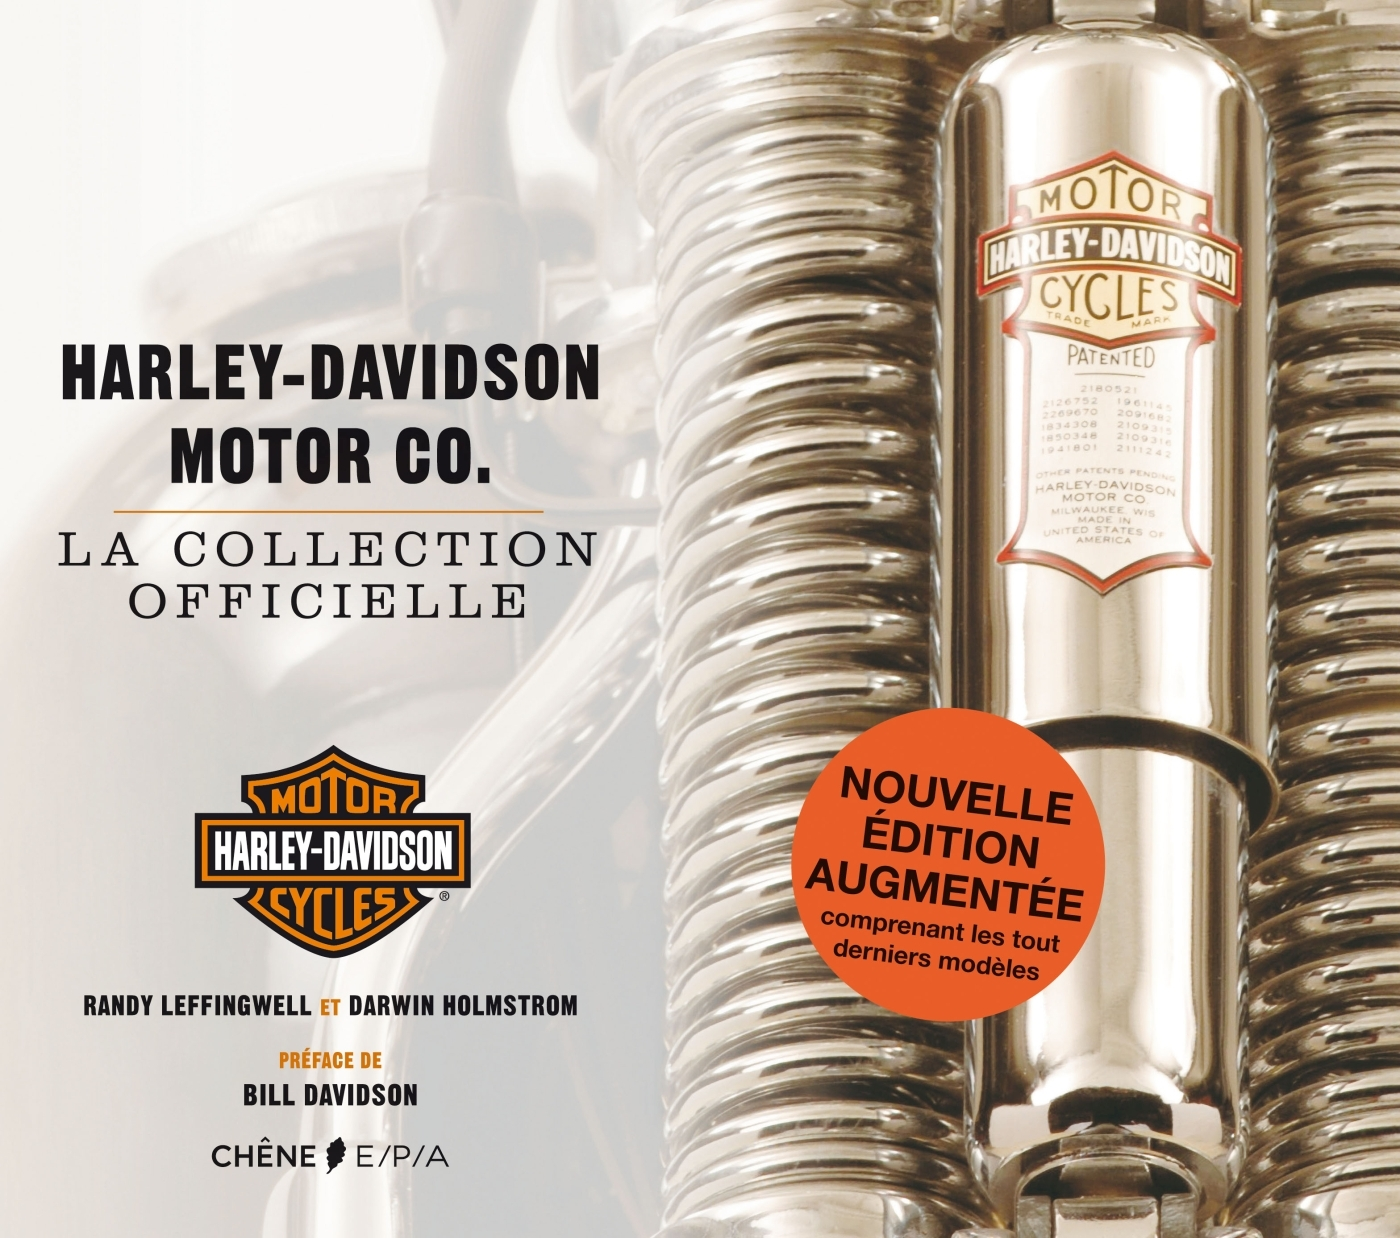 HARLEY-DAVIDSON MOTOR CO. - LA COLLECTION OFFICIELLE - NOUVELLE EDITION